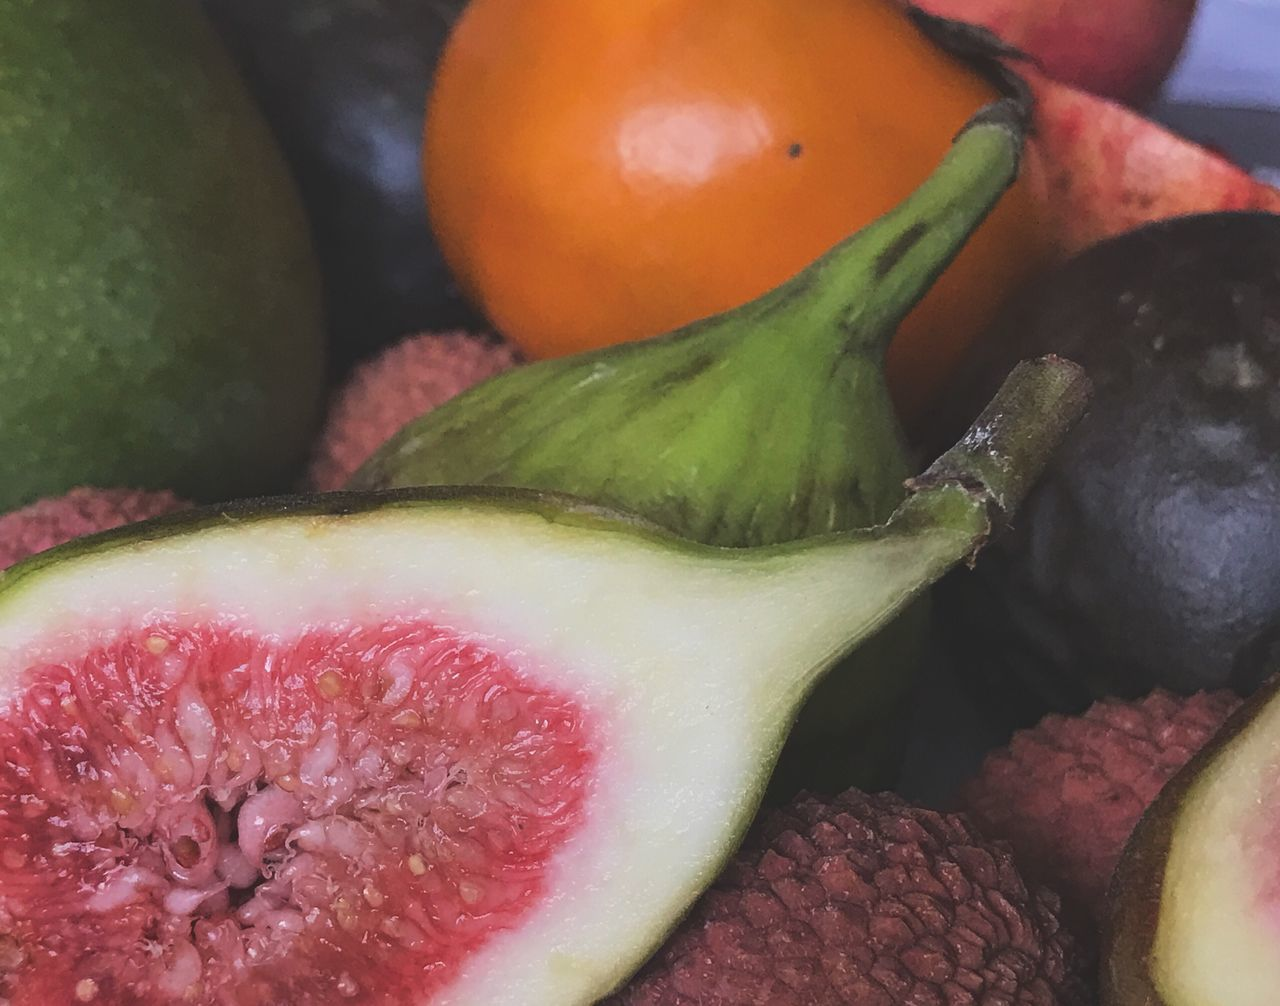 Food Food And Drink Freshness Healthy Eating Close-up Vegetable No People Fruit Green Color Indoors  Day Fig Figs Seeds Ready-to-eat Close Up Exotic Fruits Exotic Fruit Closeup Still Life Fruits Indoors  Halved Juicy Freshness